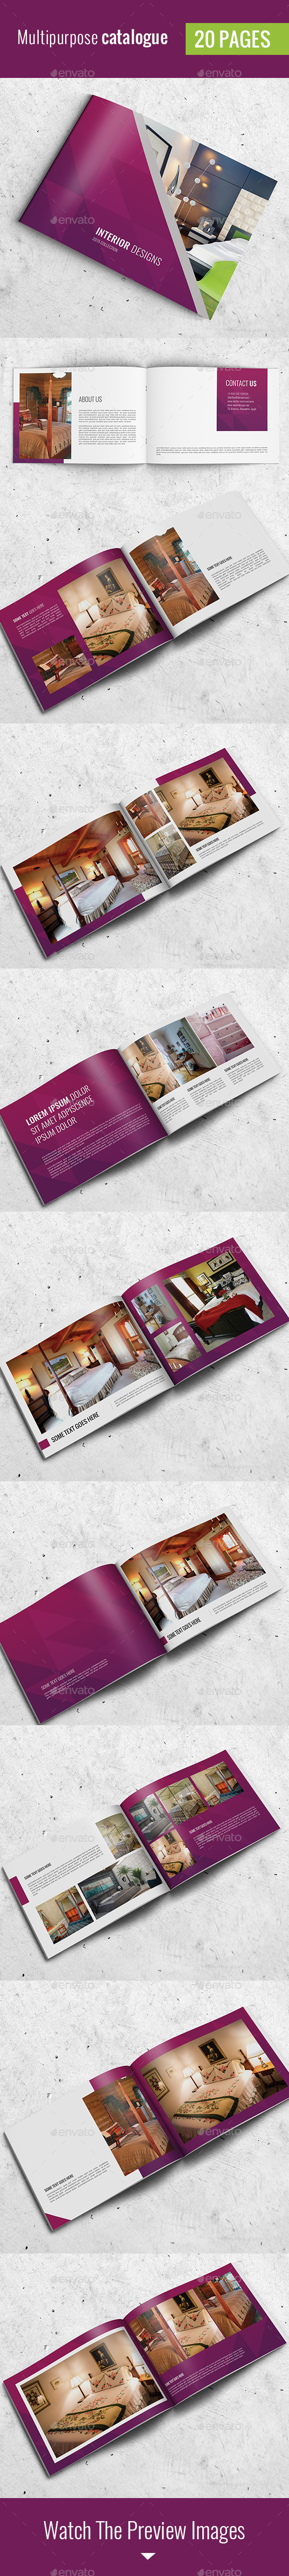 Simple Catalog / Portfolio / Brochure 2 - Catalogs Brochures